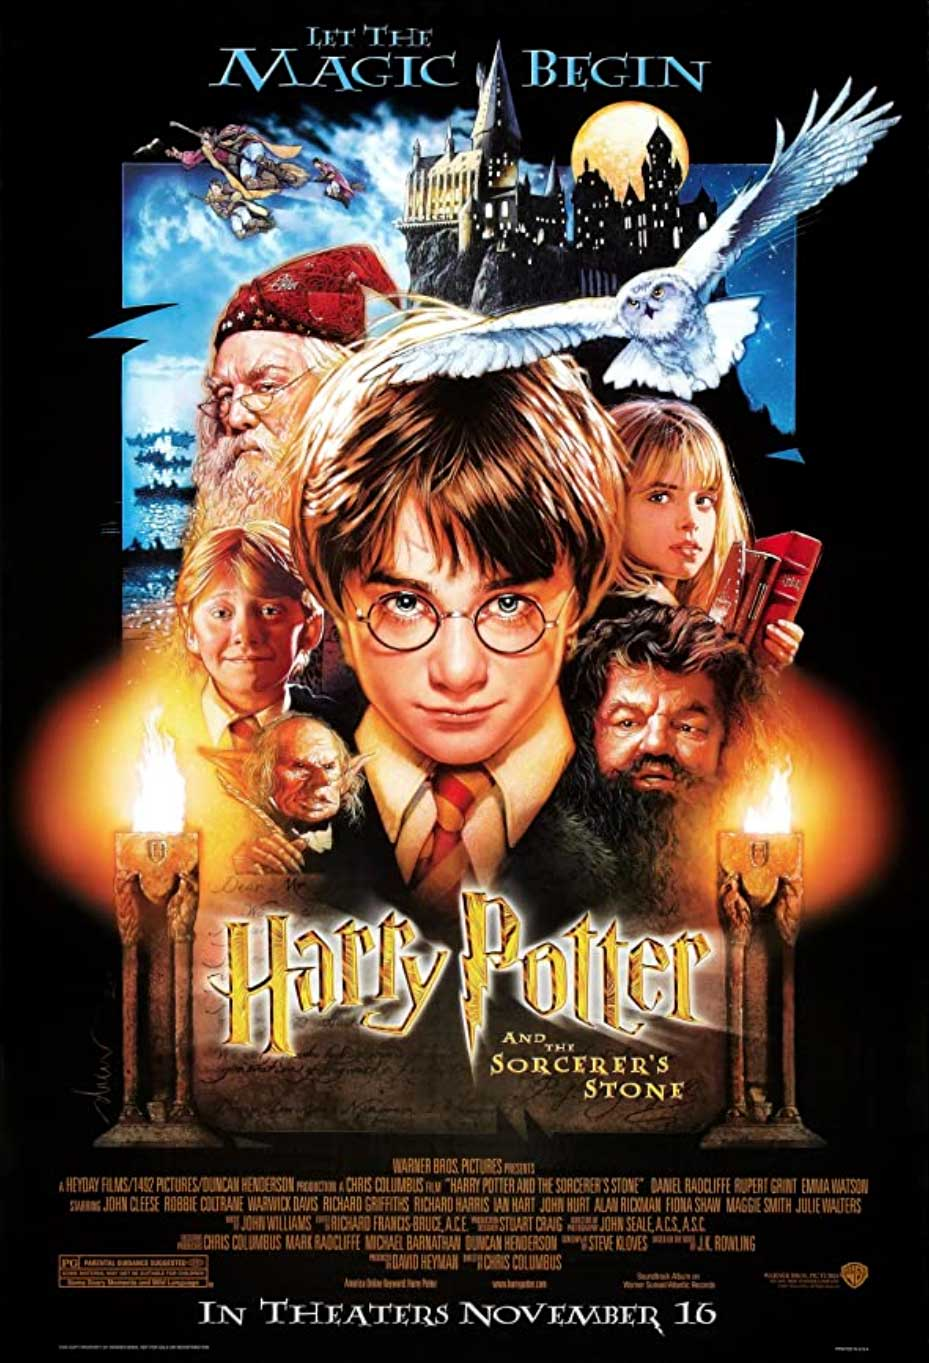 Harry-Potter-and-the-Philosophers-Stone-2001-poster